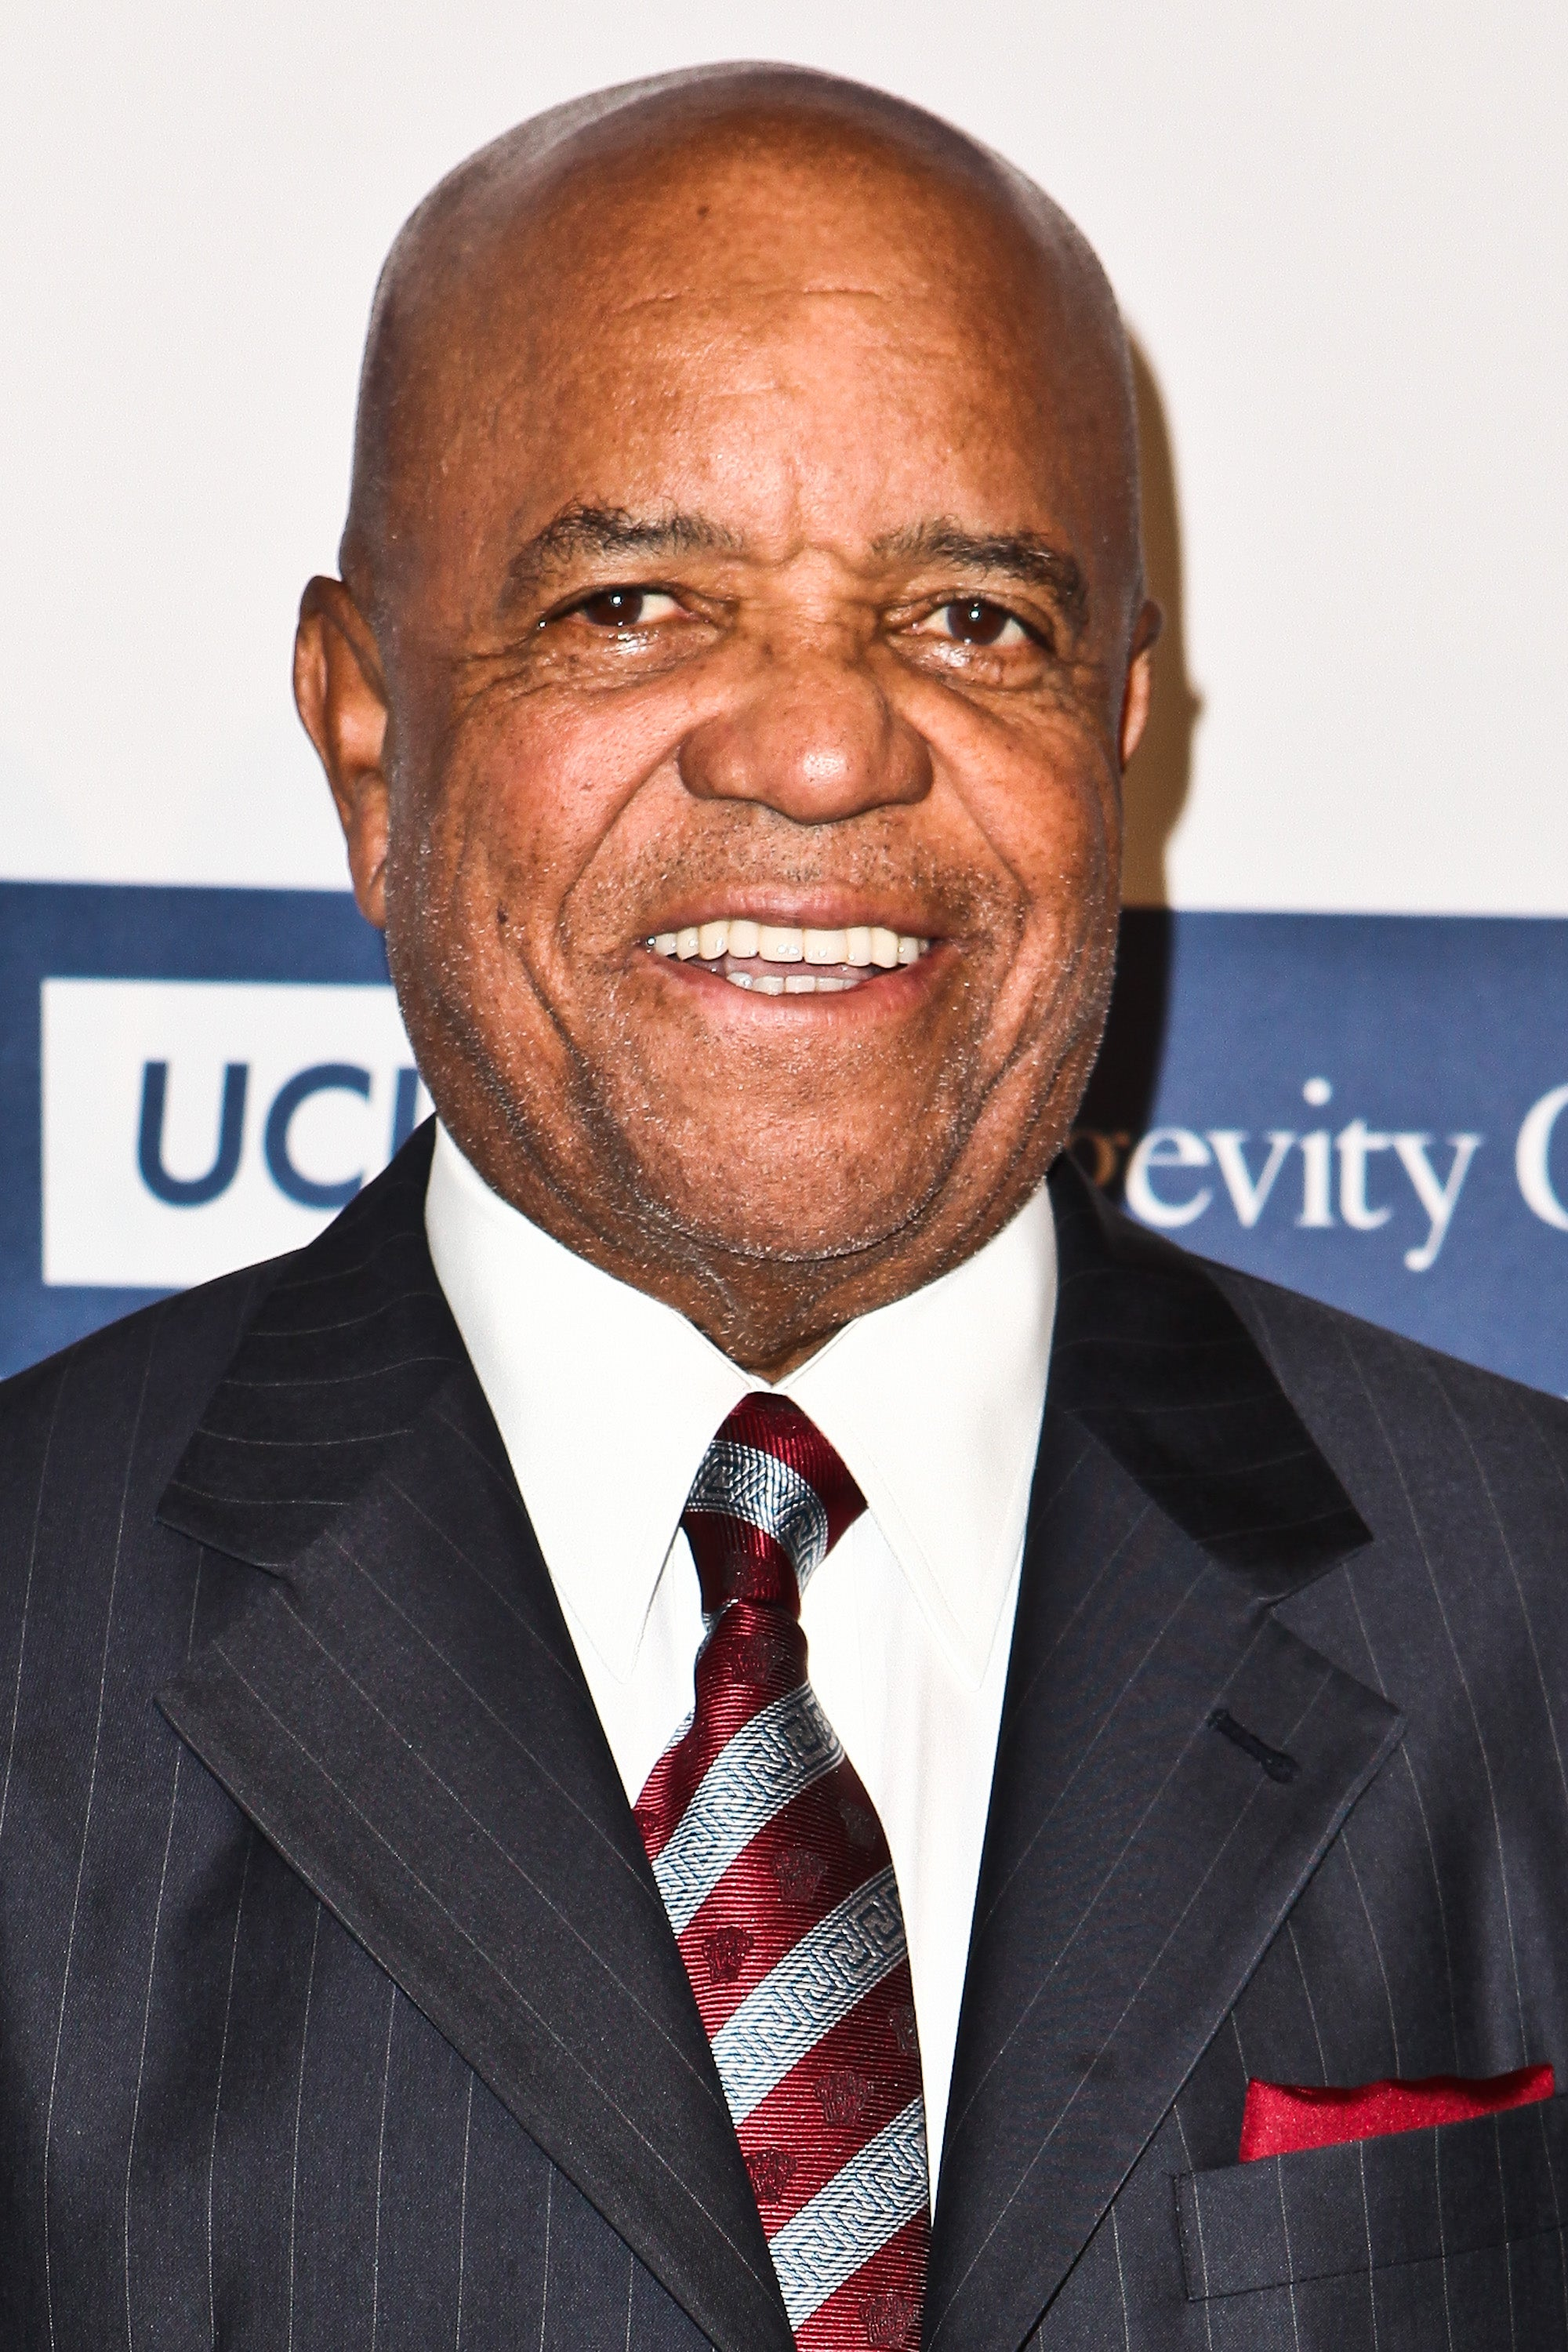 Berry Gordy Creates an Audition Website to Find Young Michael Jackson